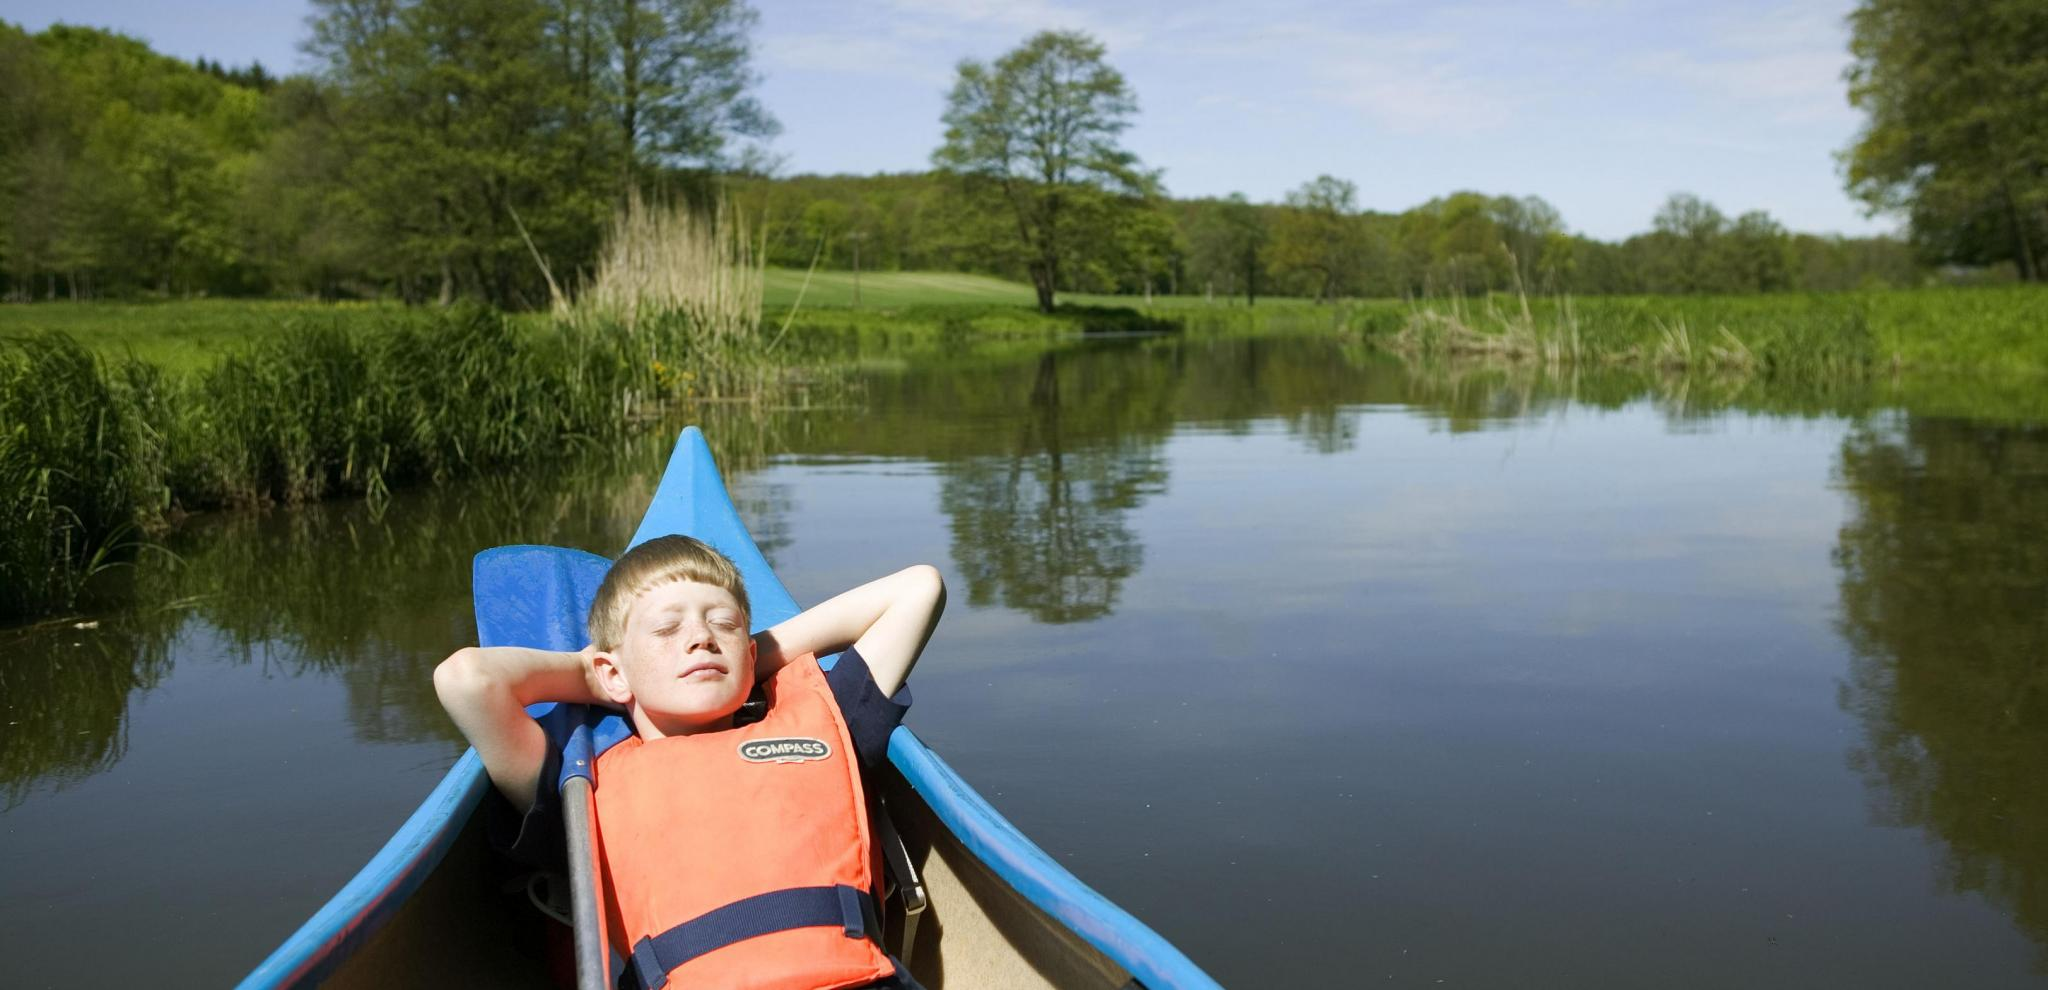 Boy relaxing in a canoe © Sven Persson